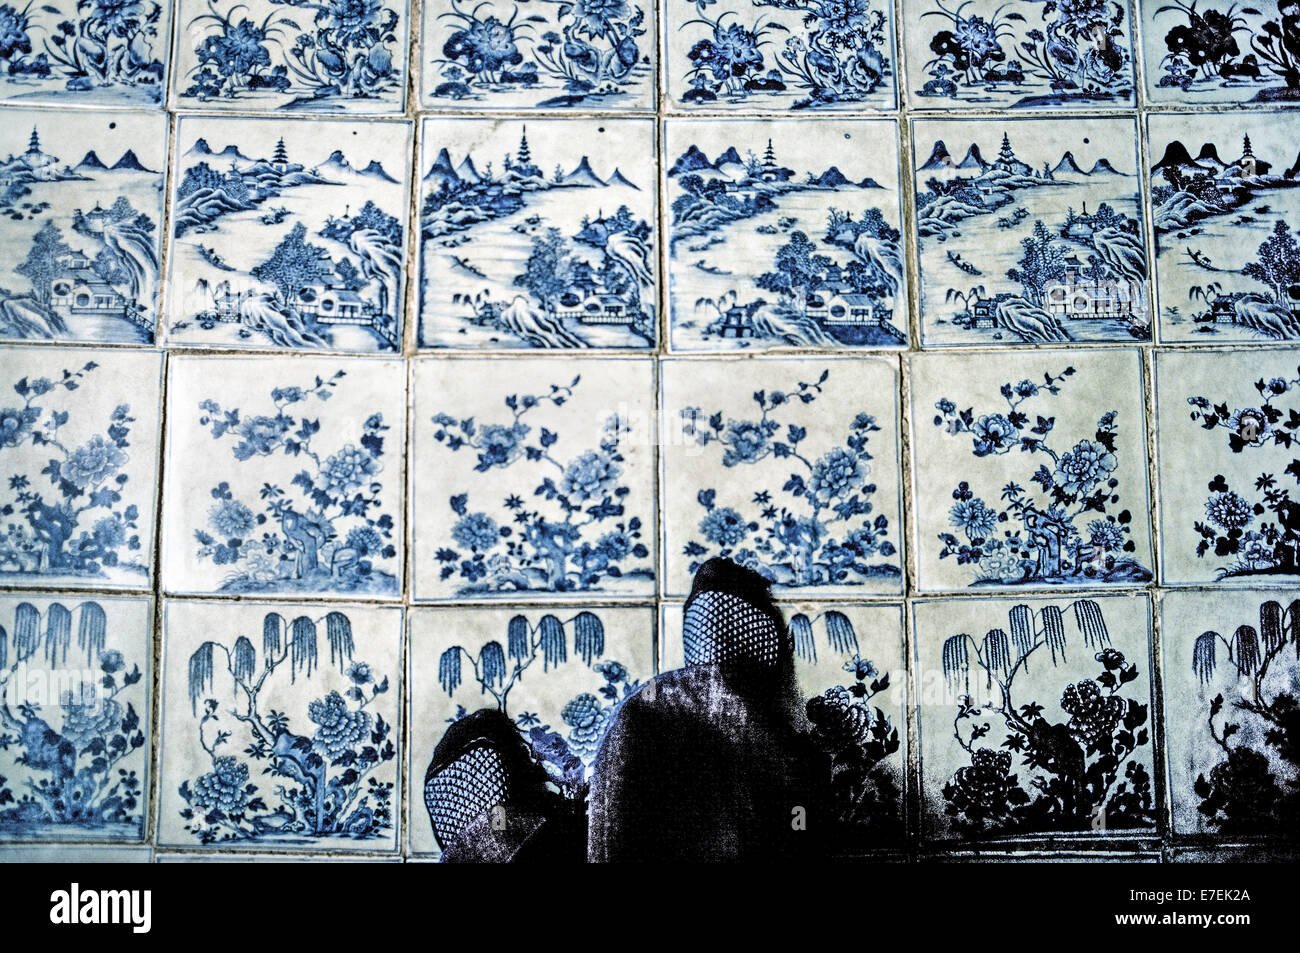 Delighted 1200 X 600 Floor Tiles Tiny 16 Ceiling Tiles Regular 2 X 4 Ceiling Tile 2X2 Drop Ceiling Tiles Old 3 Tile Patterns For Floors Pink3D Ceramic Tiles Visitors Walk On Blue Hand Painted Ceramic Floor Tiles Brought ..